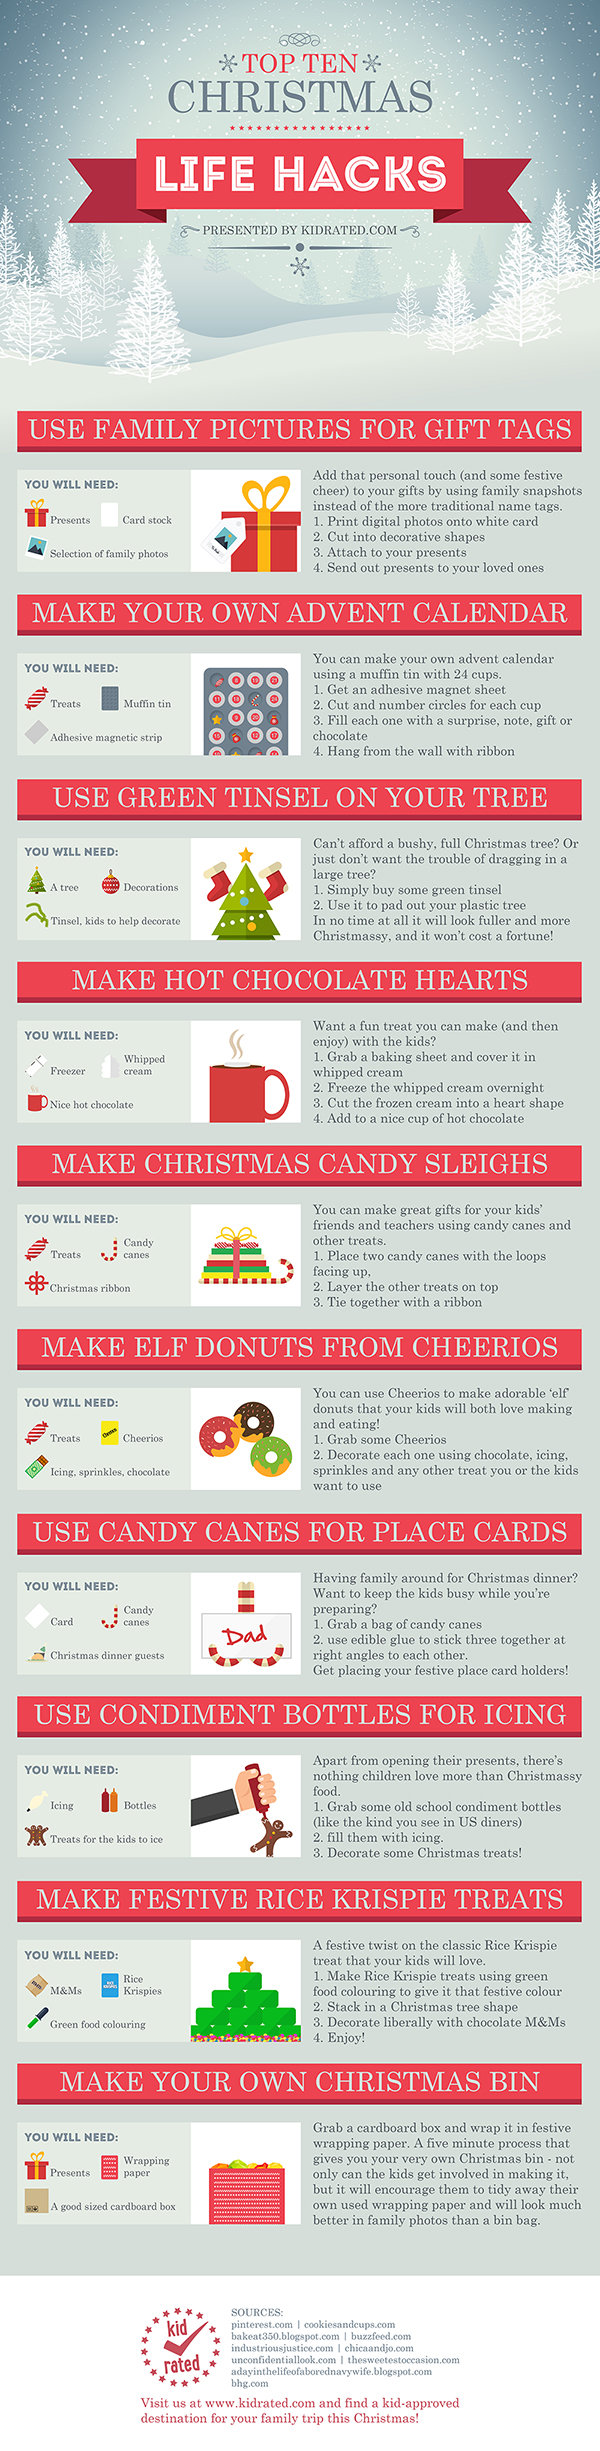 Top Ten Christmas Life Hacks infographic